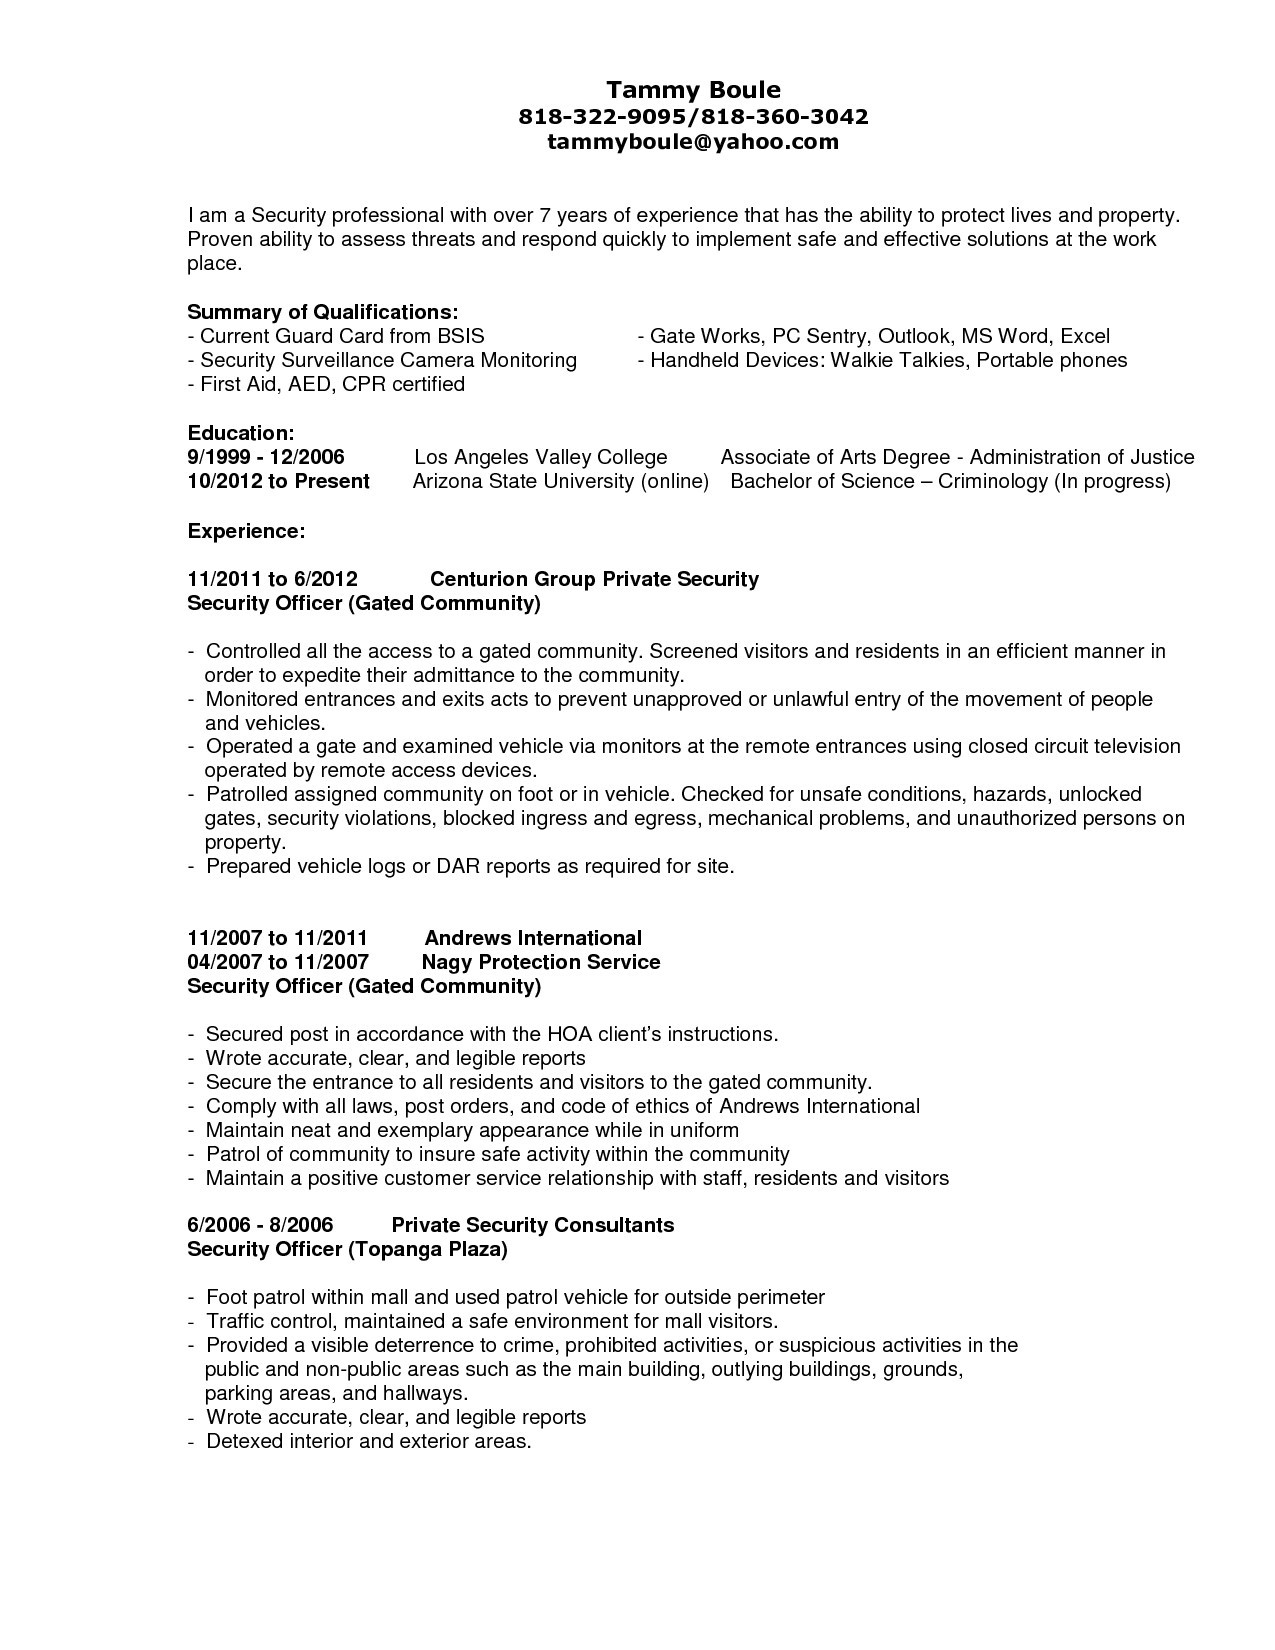 Professional Reference Letter Template - Elegant Professional Reference Letter Template